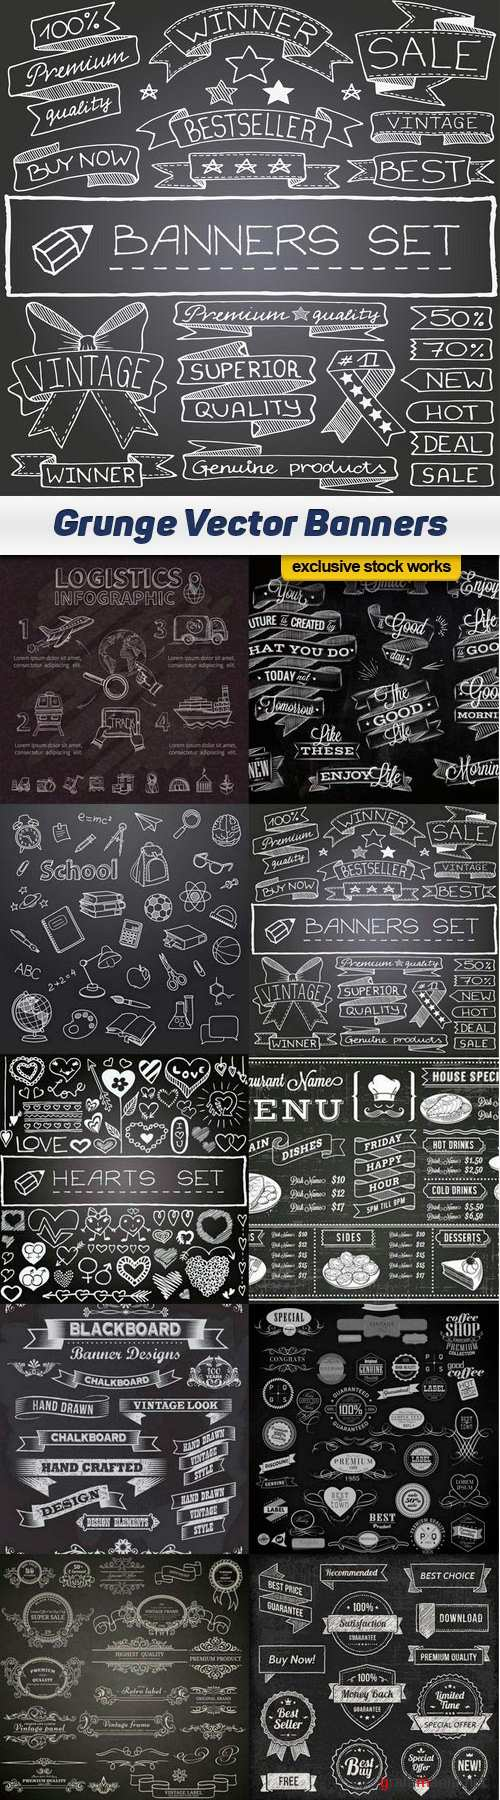 Grunge Vector Banners - 10 EPS